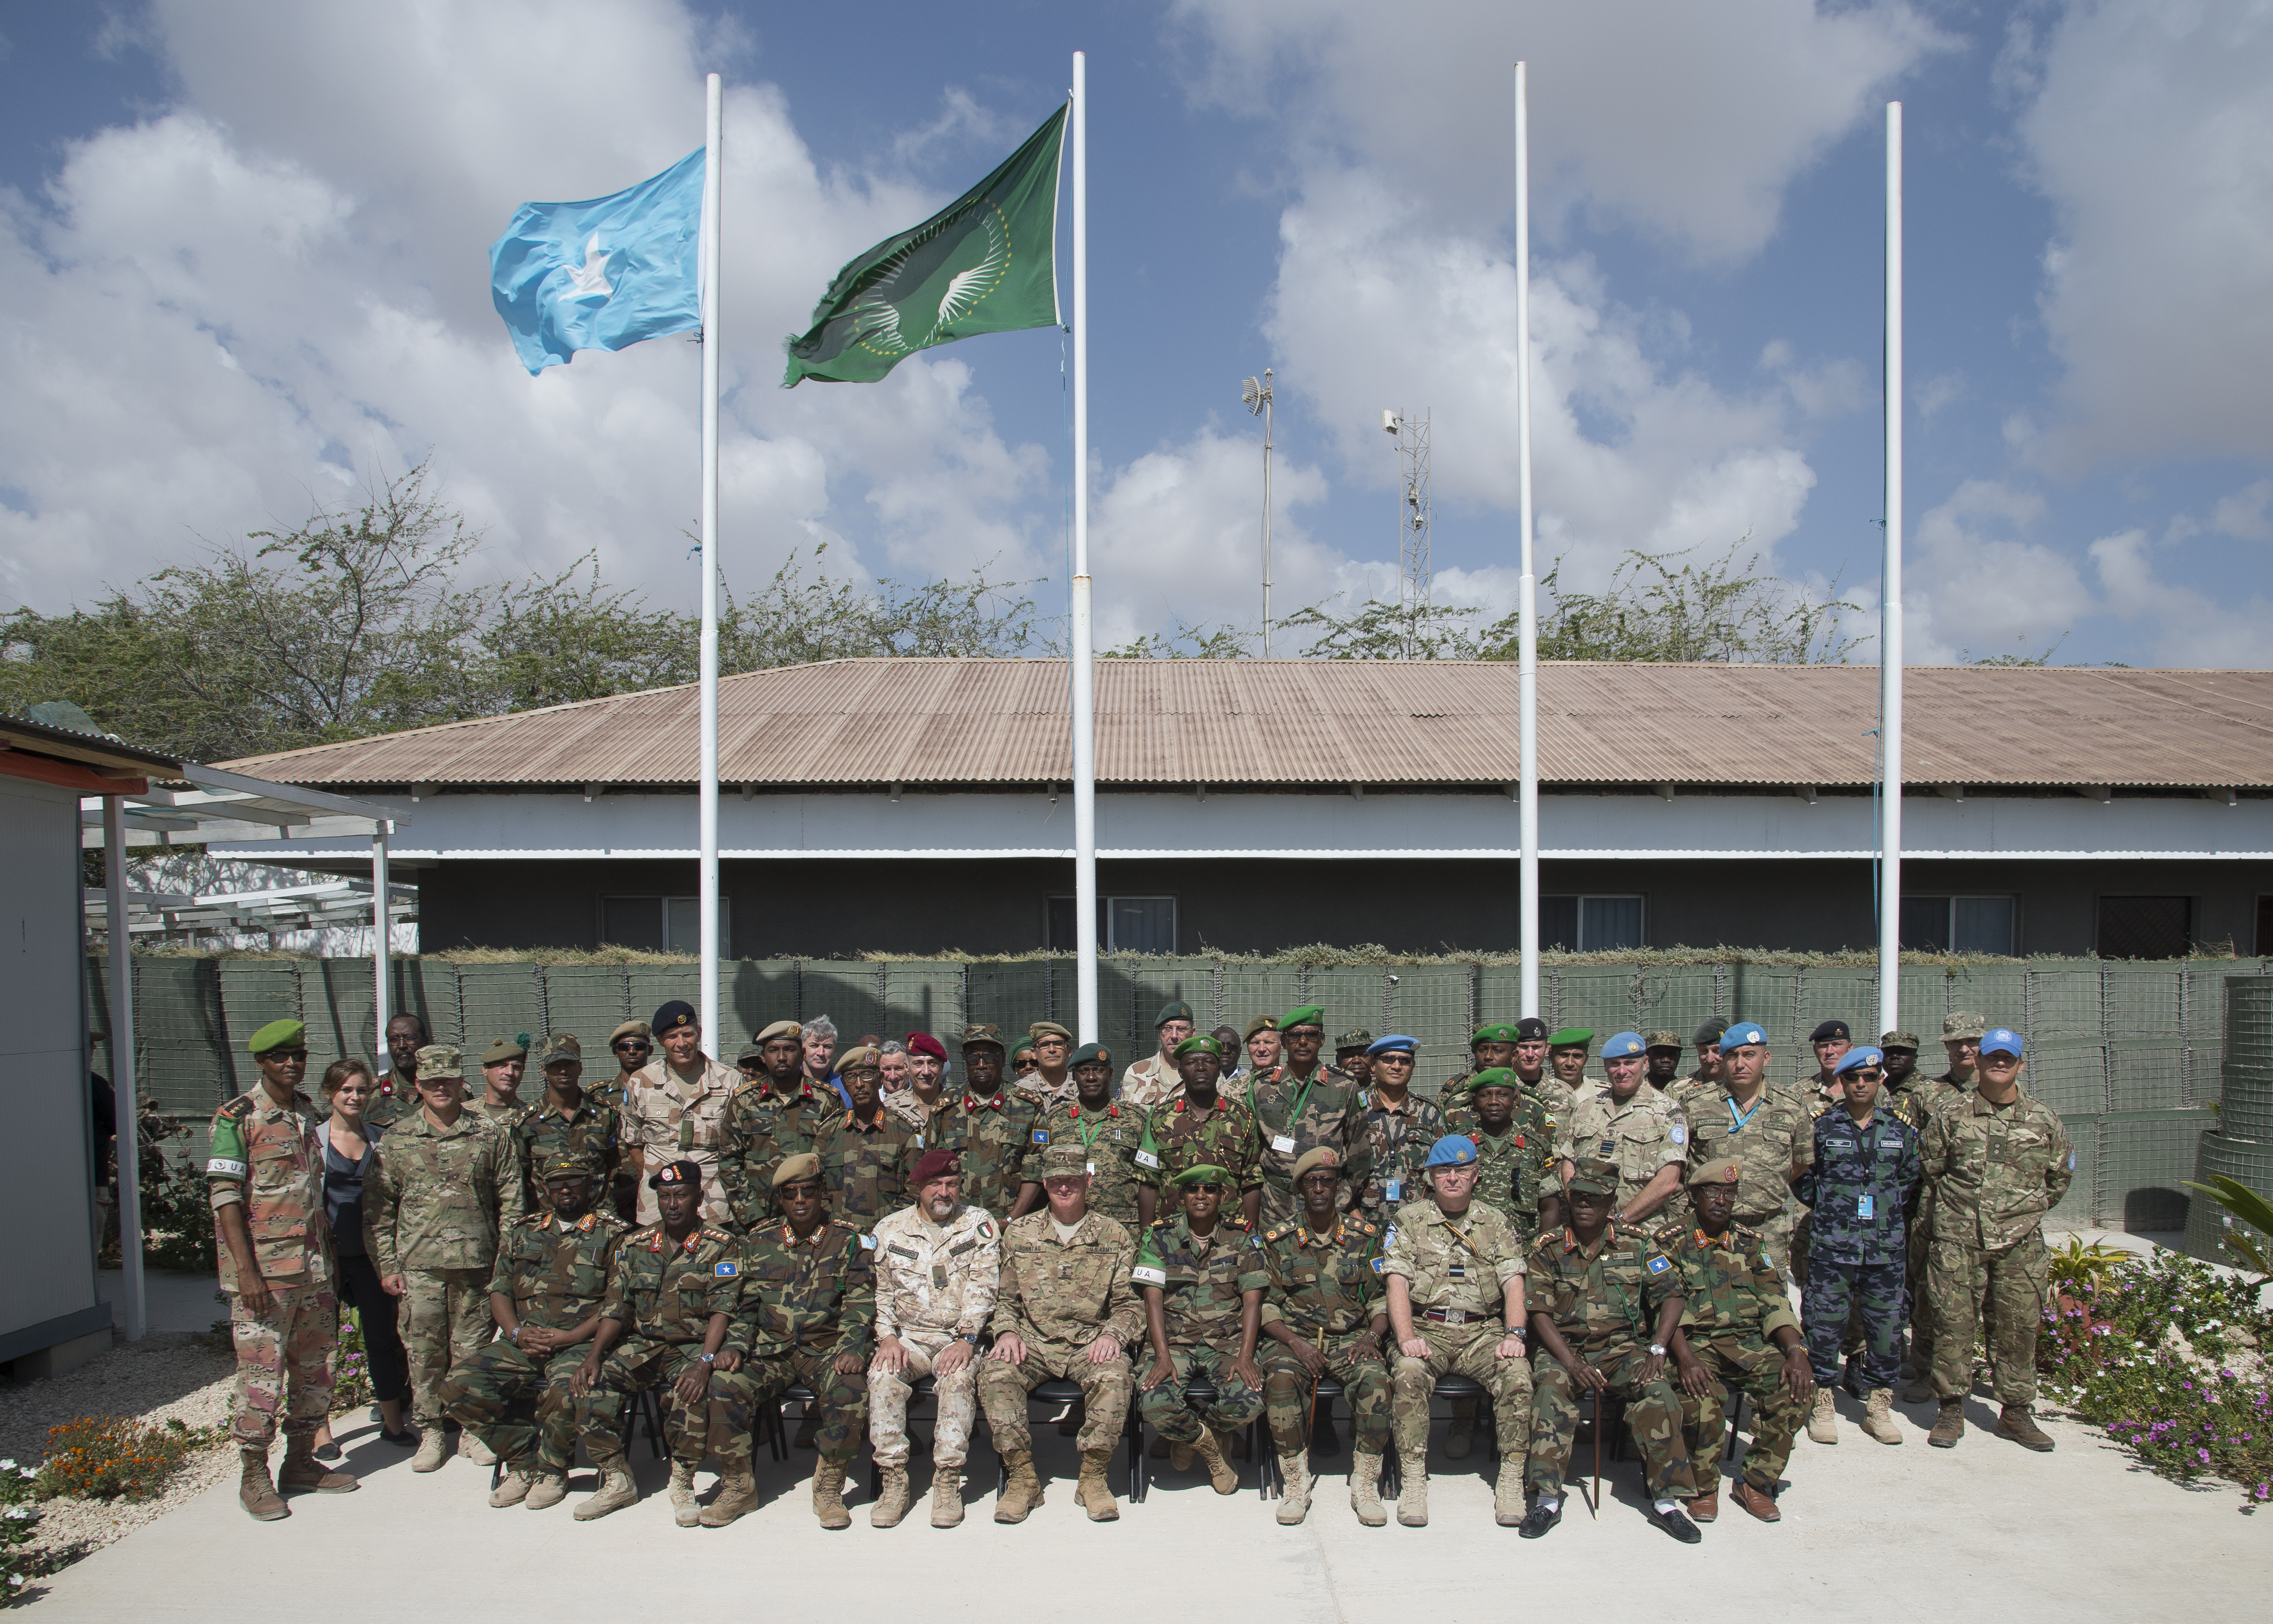 Leaders of the Somali National Army gather with international military and civilian officials for the SNA Symposium in downtown Mogadishu, Jan. 11, 2017. More than 60 participants attended the two-day event, including representatives from Denmark, Germany, Italy, Somalia, Turkey, Uganda, the United Arab Emirates, United Kingdom and the United States of America. Also in attendance, were representatives from international organizations such as the United Nations, European Union Training Mission, and the African Union Mission in Somalia.